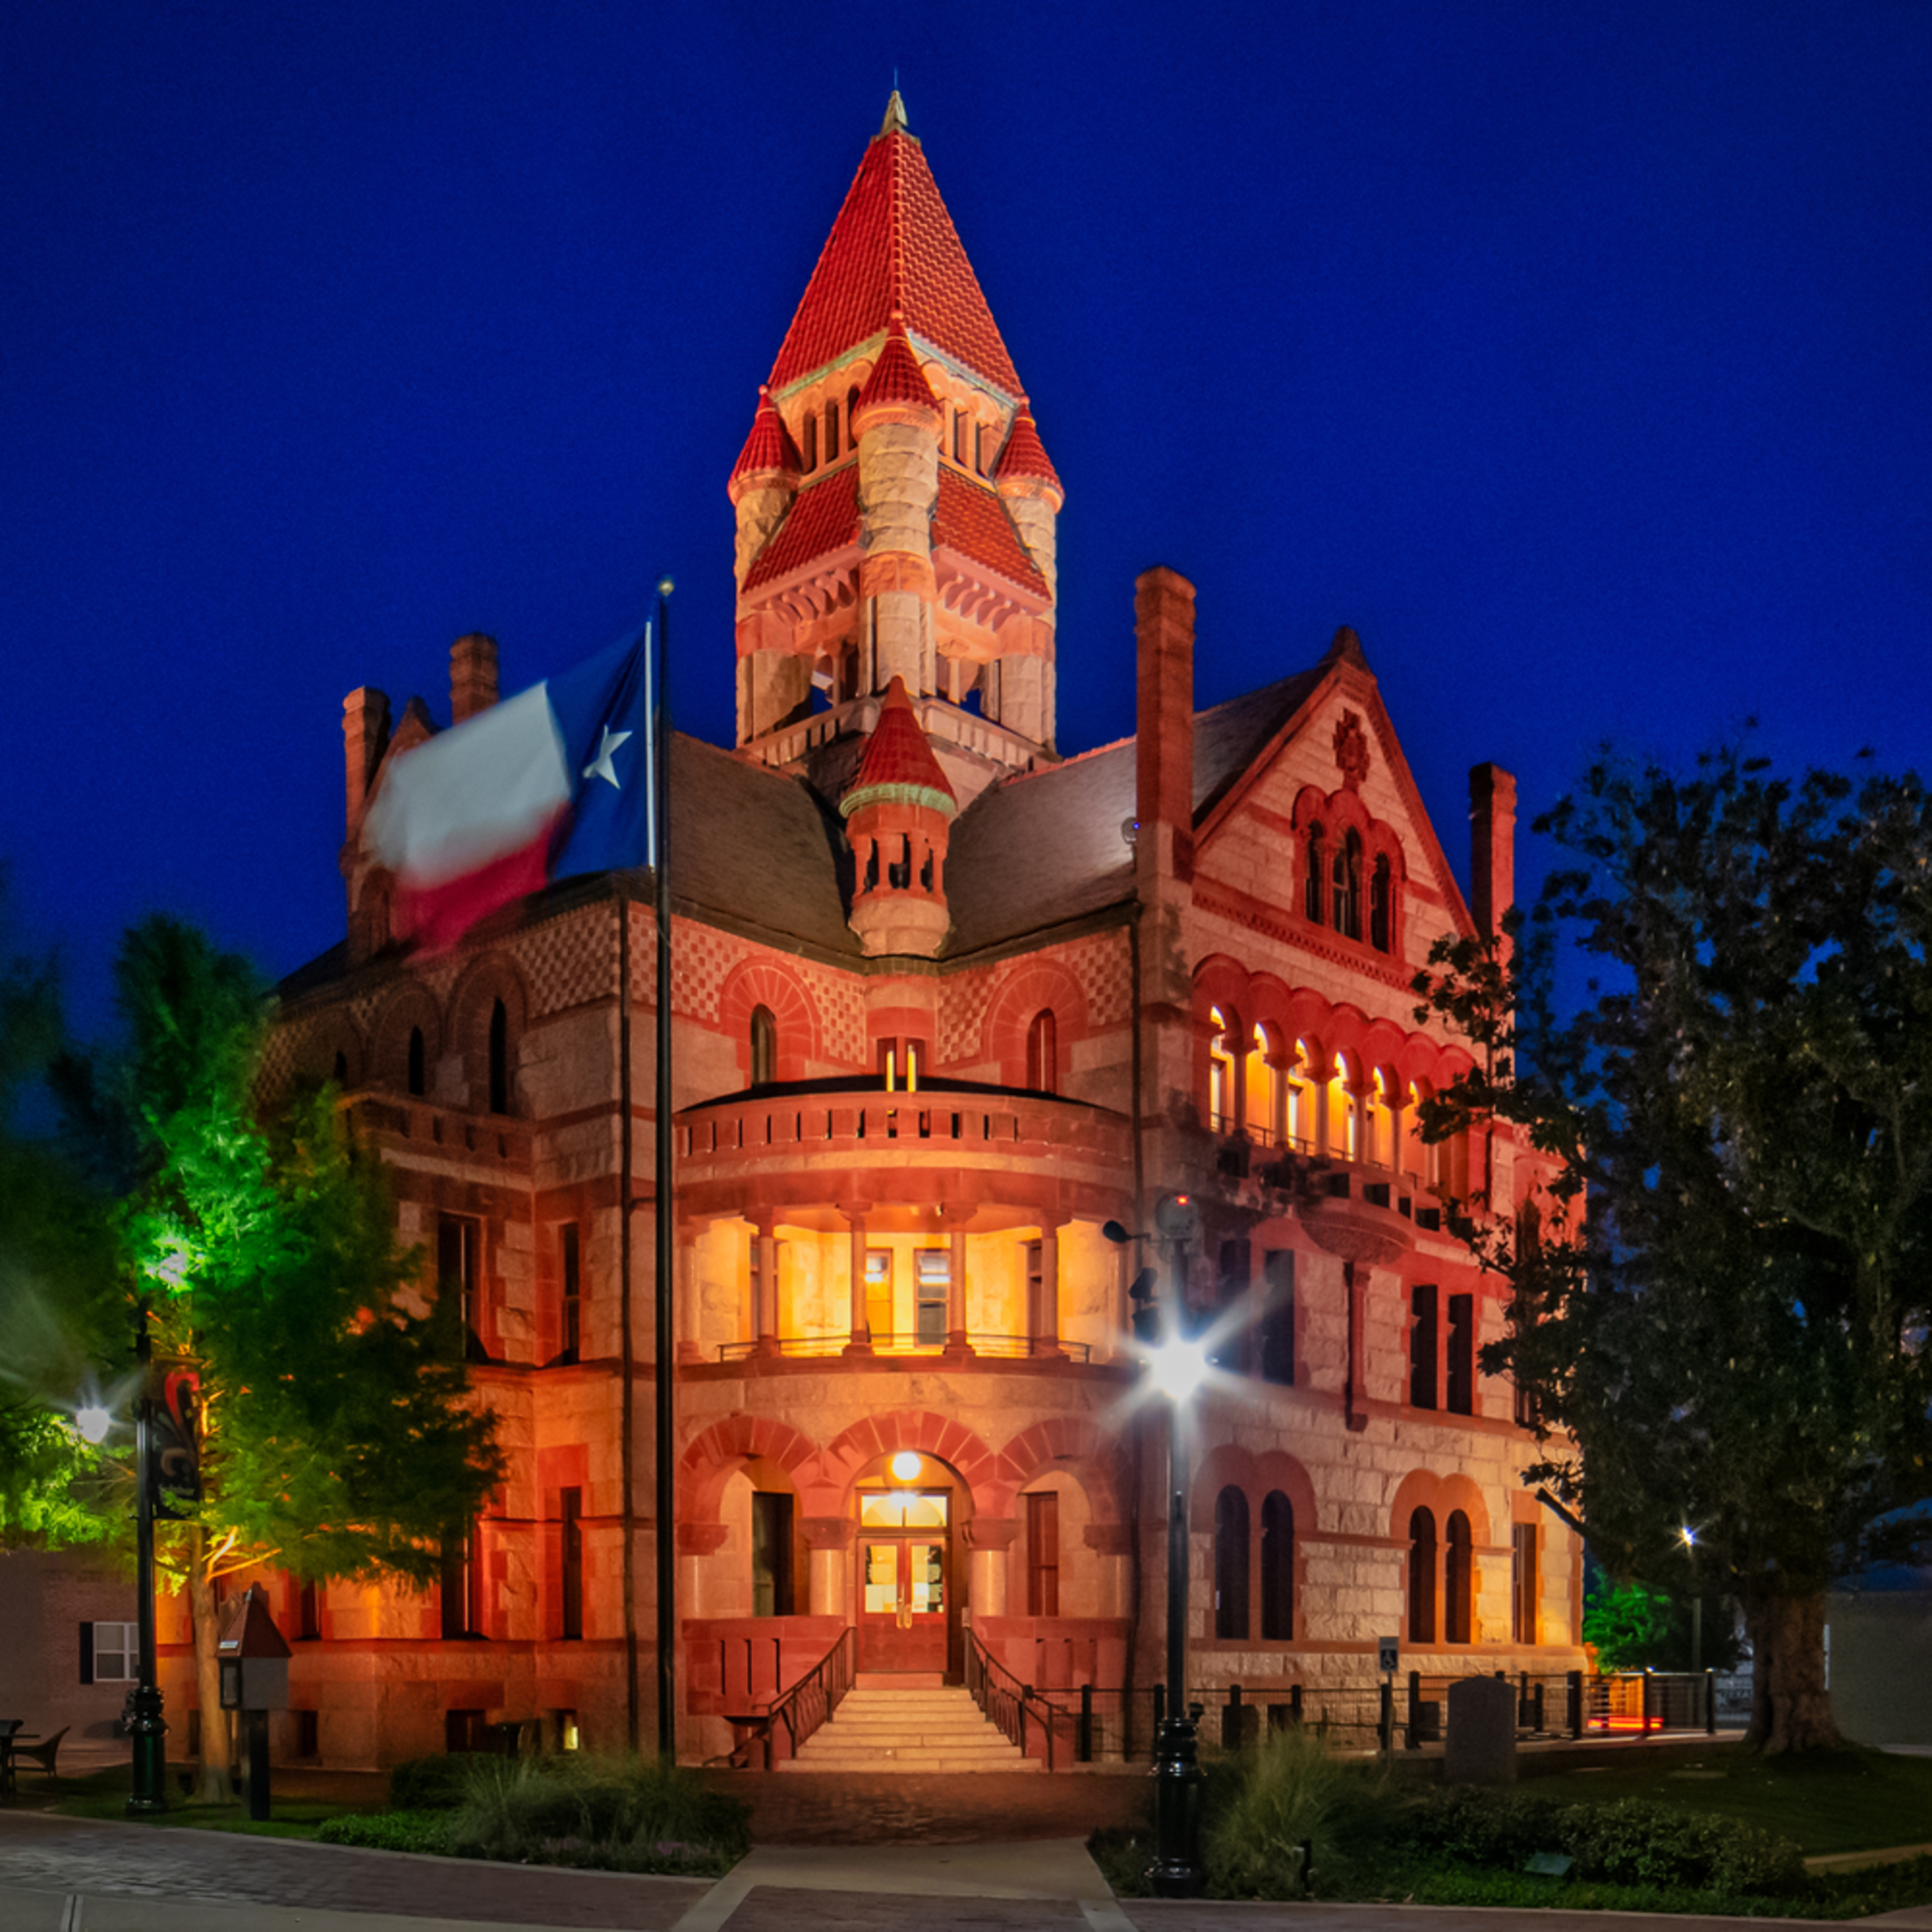 Andy crawford photography hopkins county courthouse 16x20 001 hznmzg